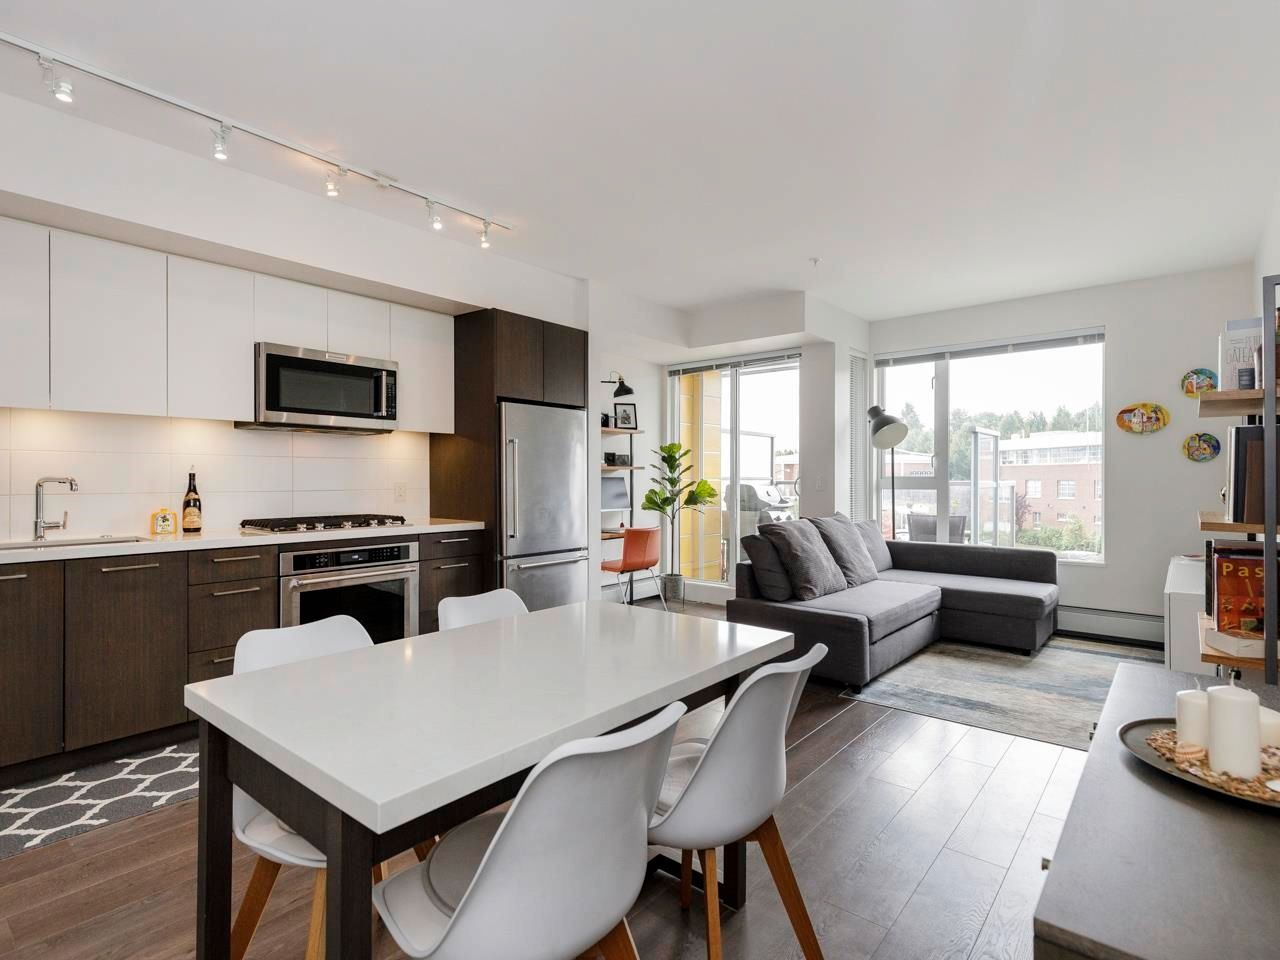 Main Photo: 411 417 GREAT NORTHERN Way in Vancouver: Strathcona Condo for sale (Vancouver East)  : MLS®# R2599138